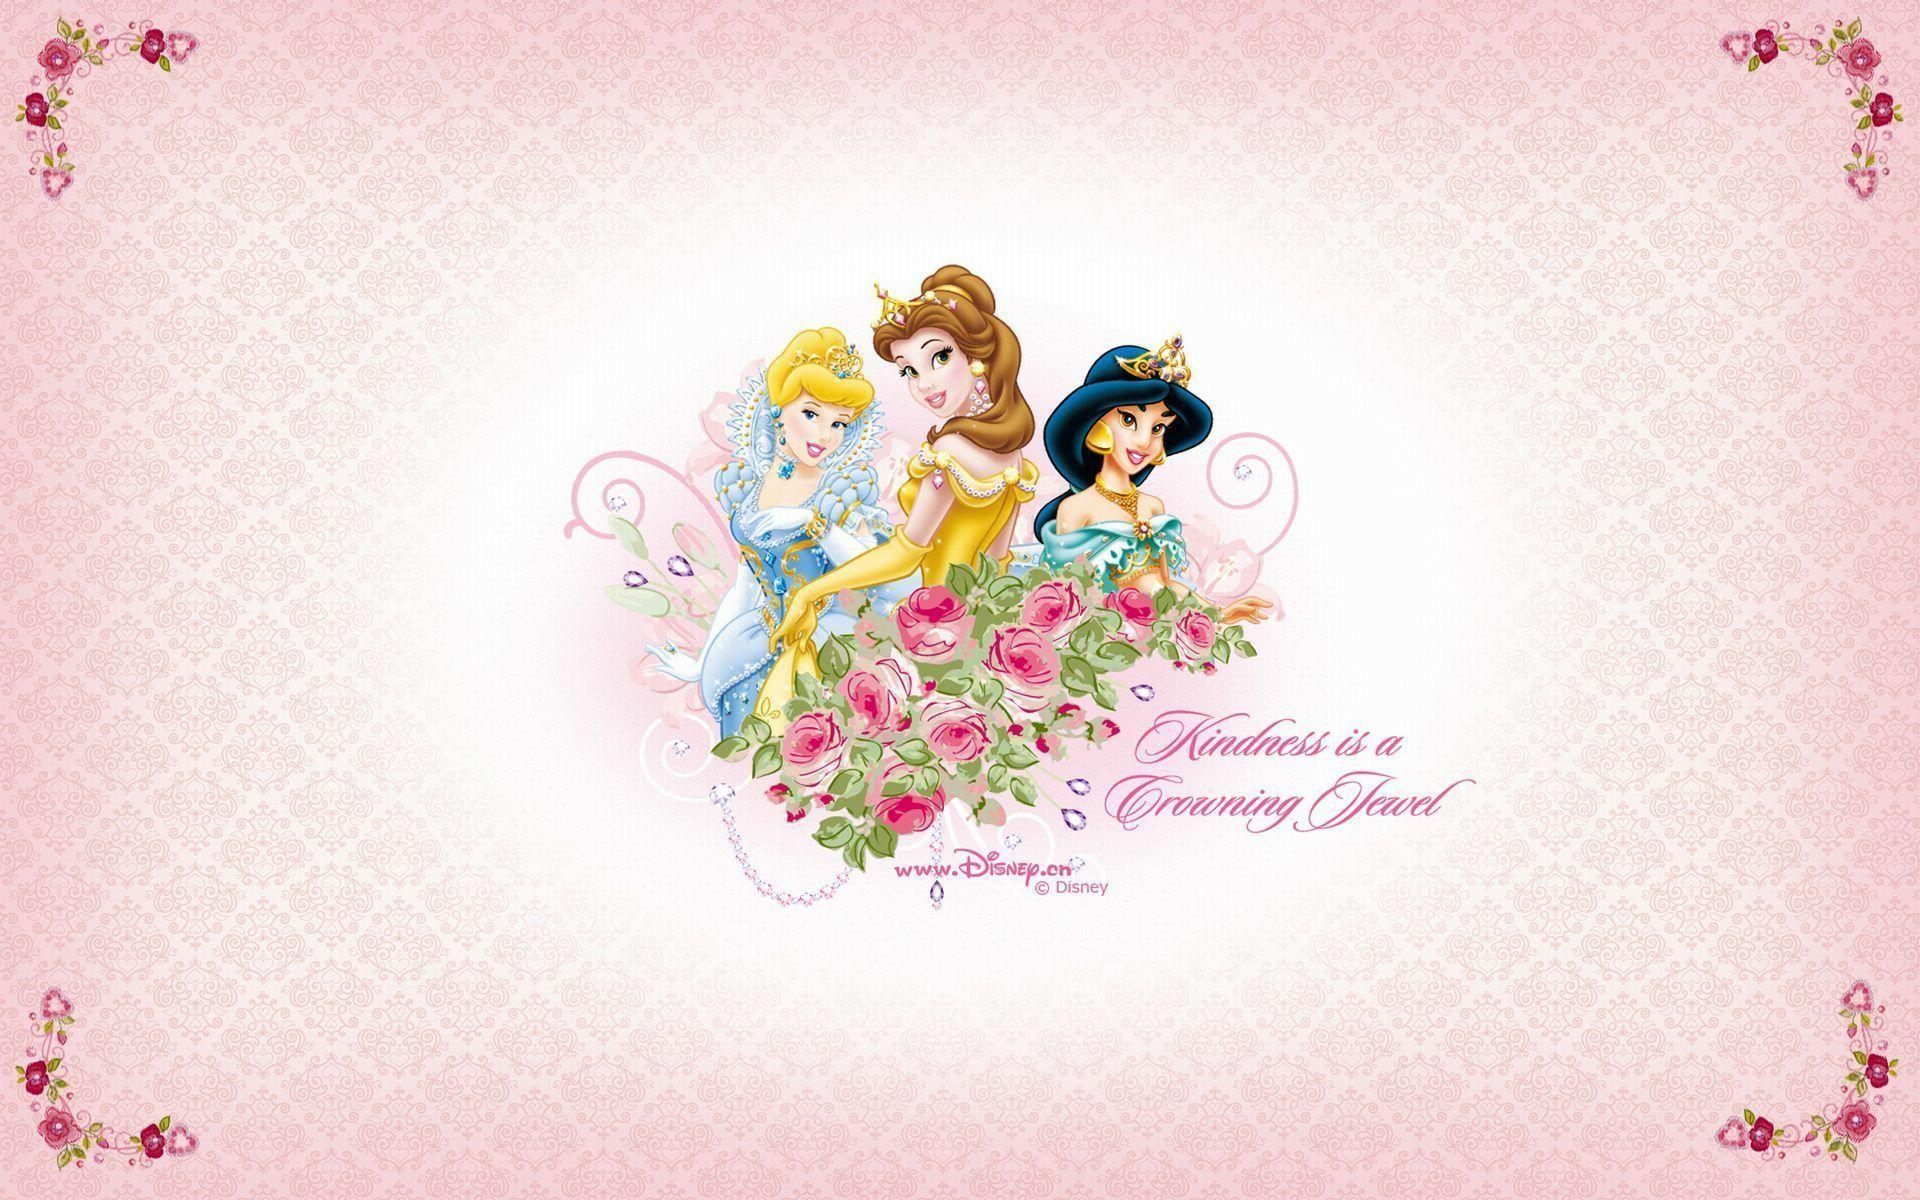 Disney Princes Fairy Tail Photo Wallpapers